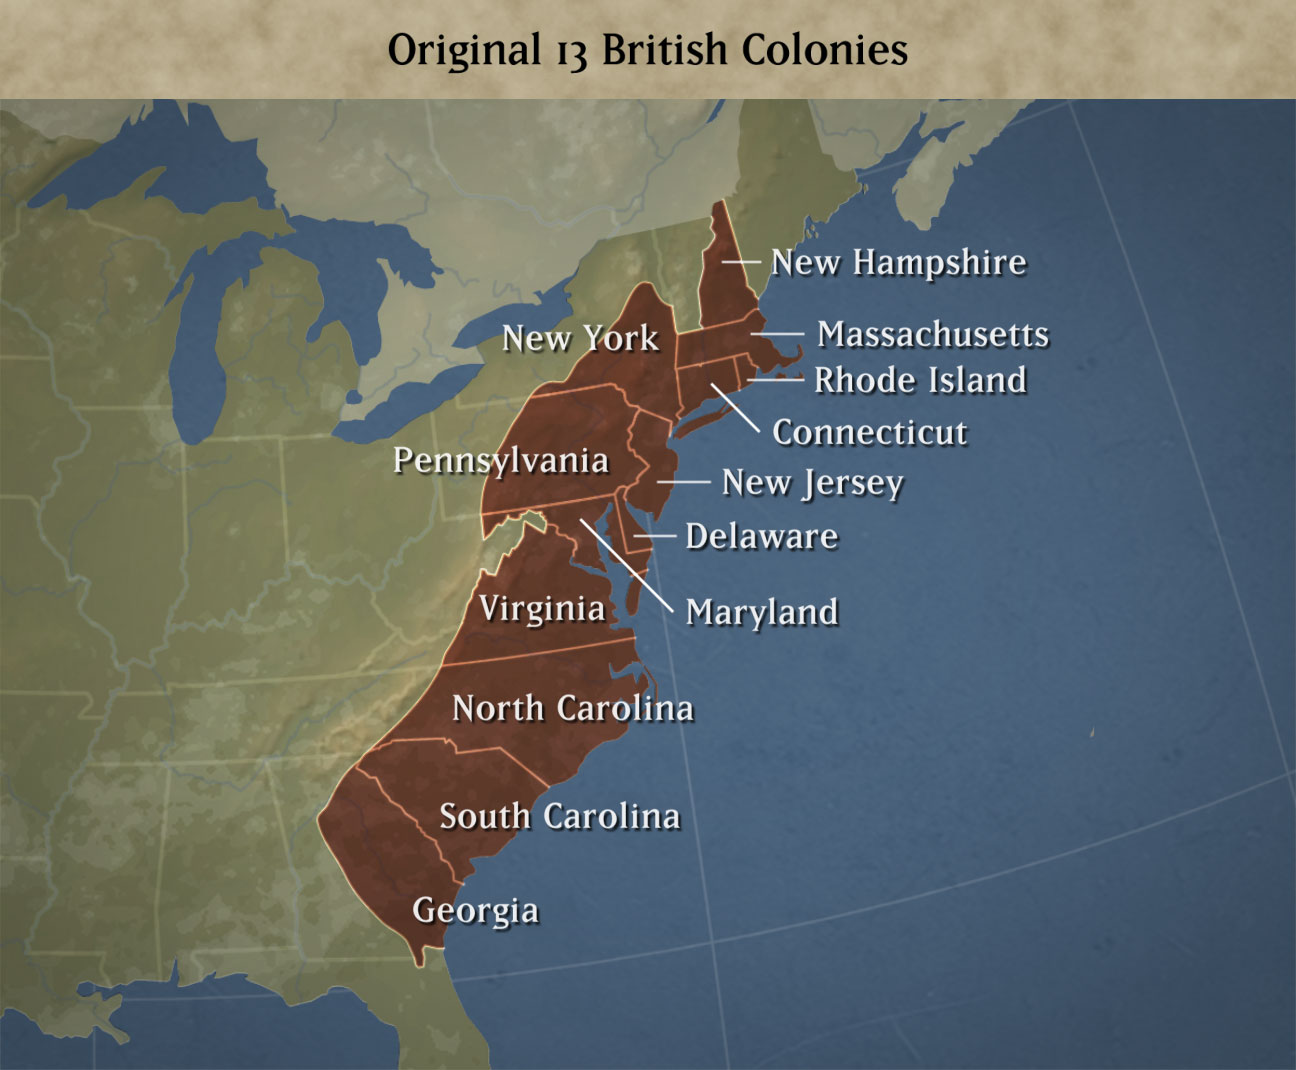 the important figure of the decolonization with the british colonists in the united states The independence of the two states of india and pakistan in 1947 was the first and most important step in decolonisation in the following decade, britain also gave independence to most of the territories of the british empire.